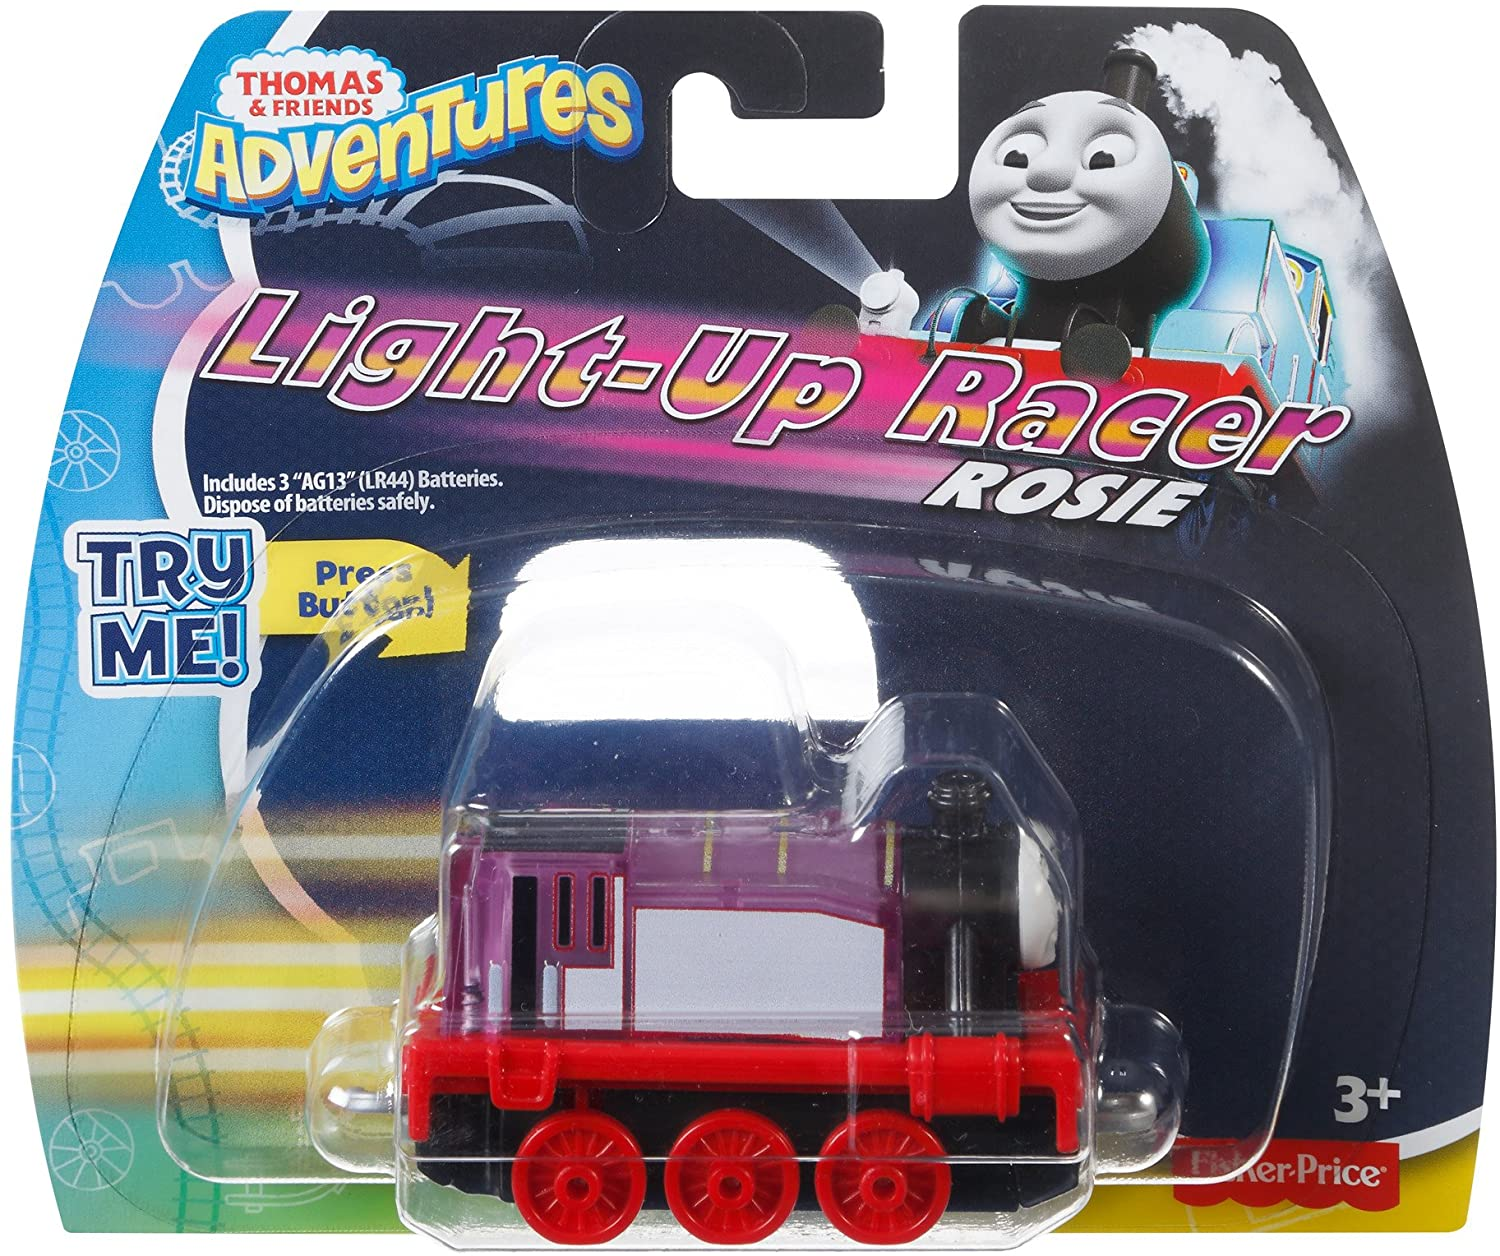 FP - Thomas & Friends Adventures: Light-Up Racer Rosie